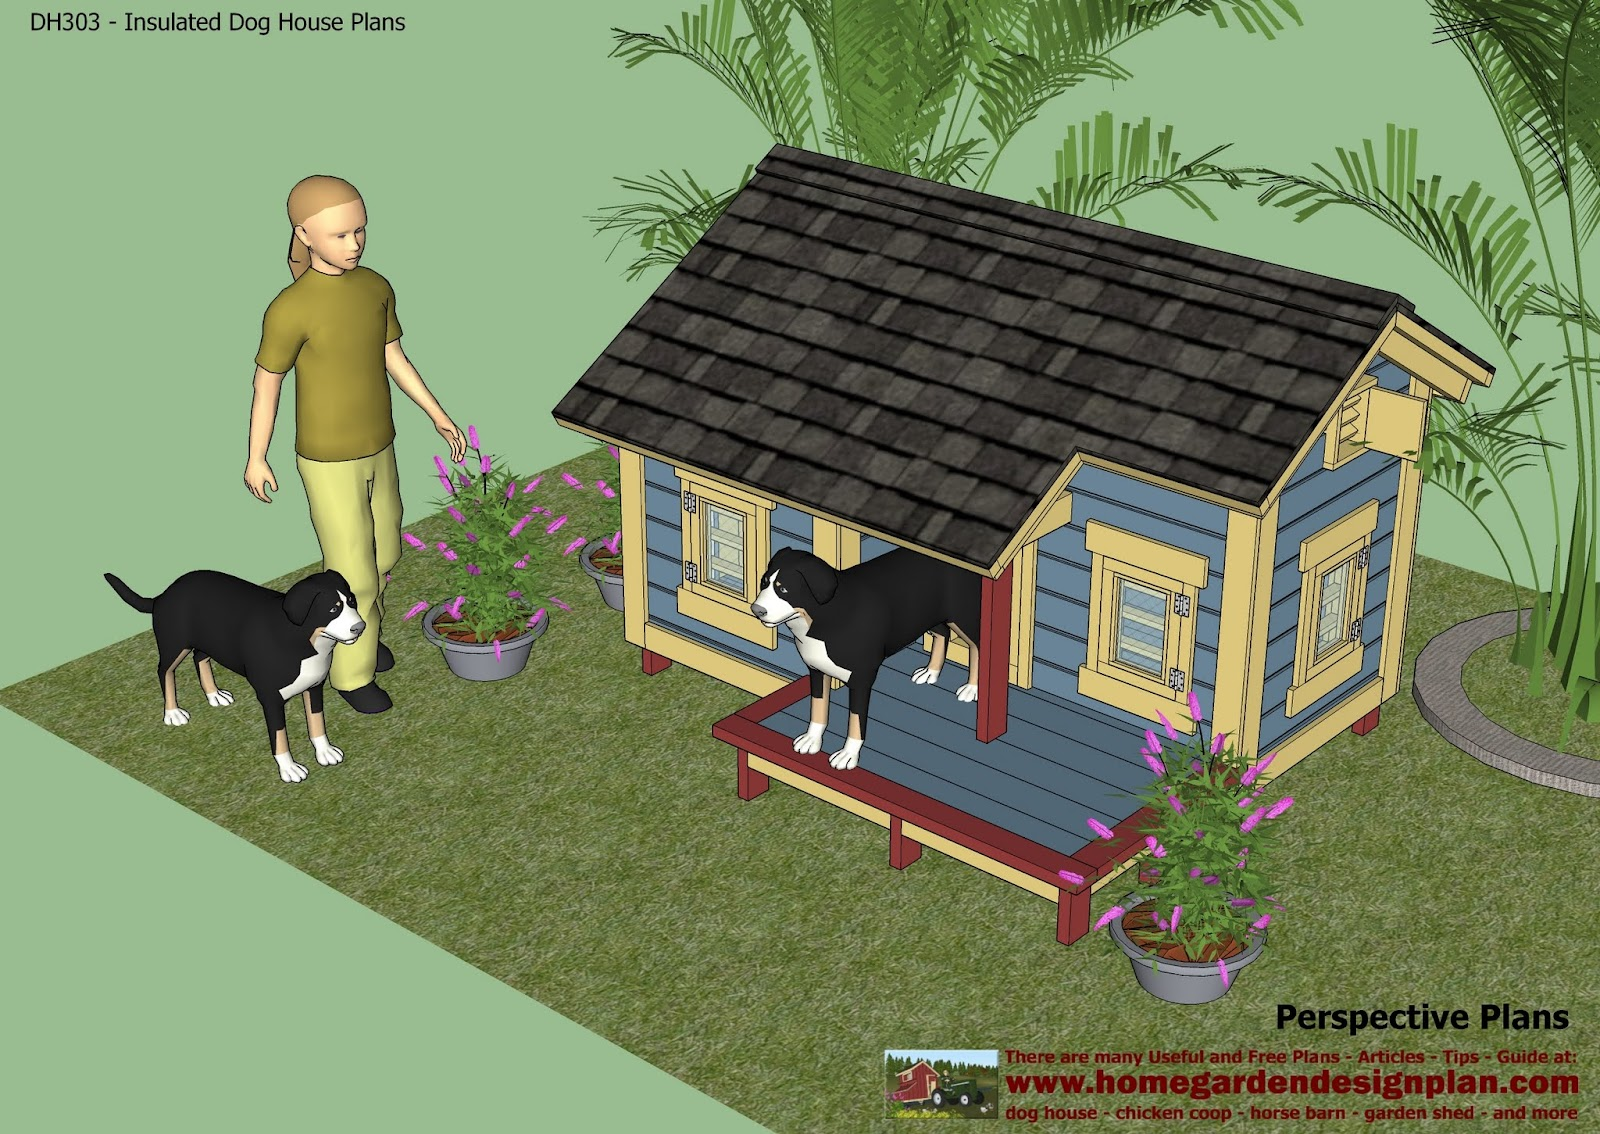 House cleaning dog free house cleaning video for Insulated dog house plans pdf